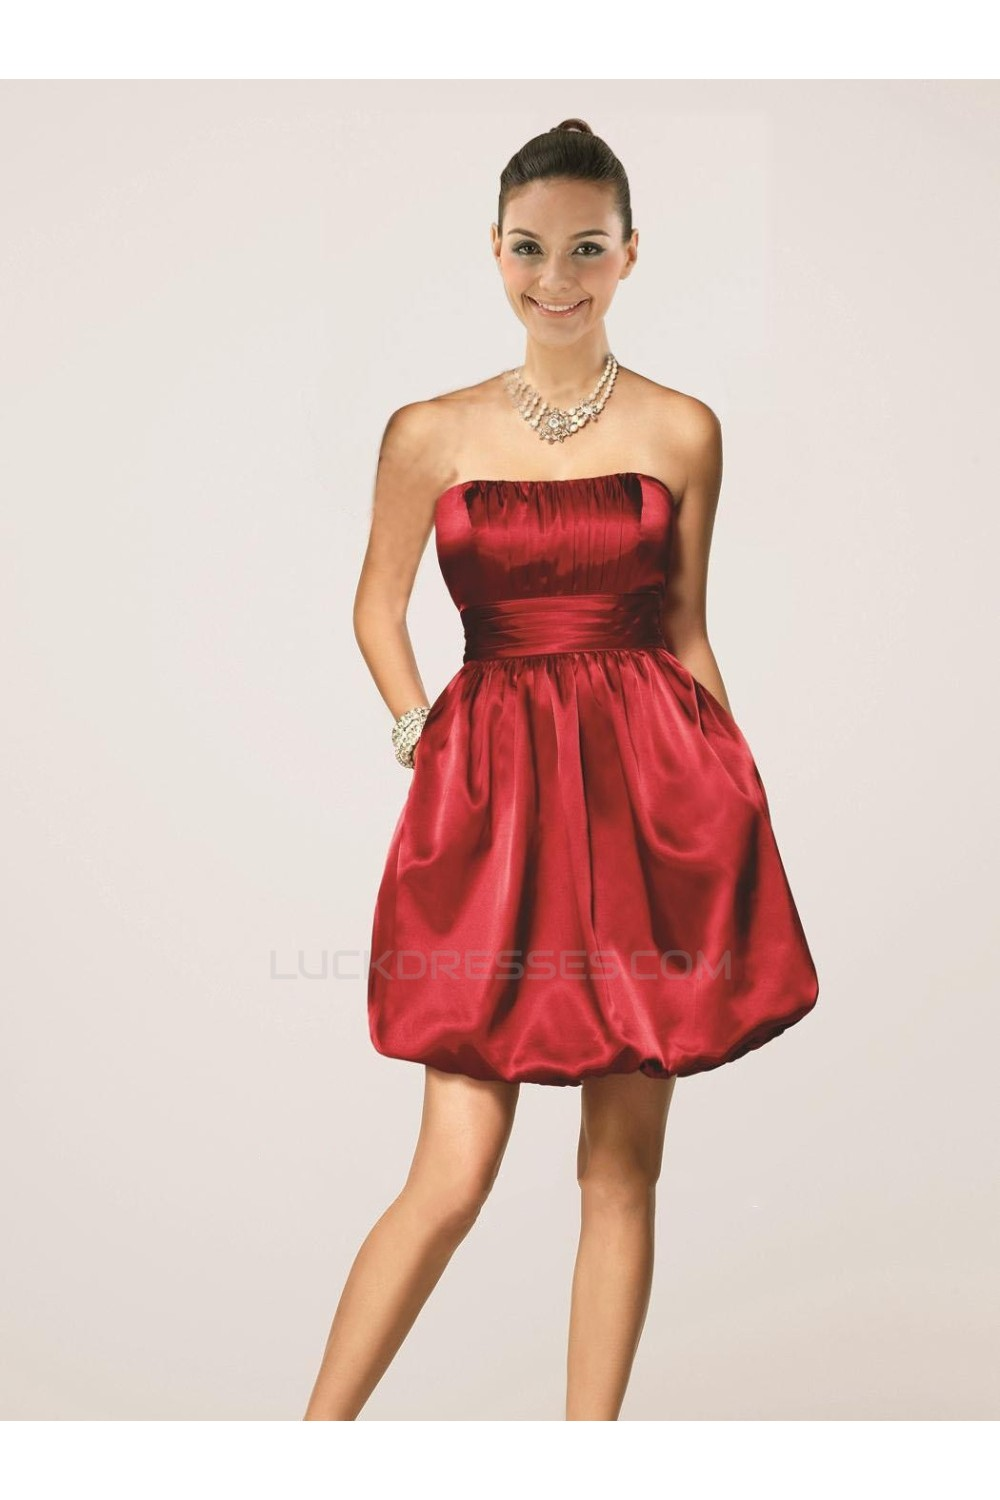 c43c8bd4564 Short Mini Strapless Red Bridesmaid Dresses Wedding Party Dresses ...